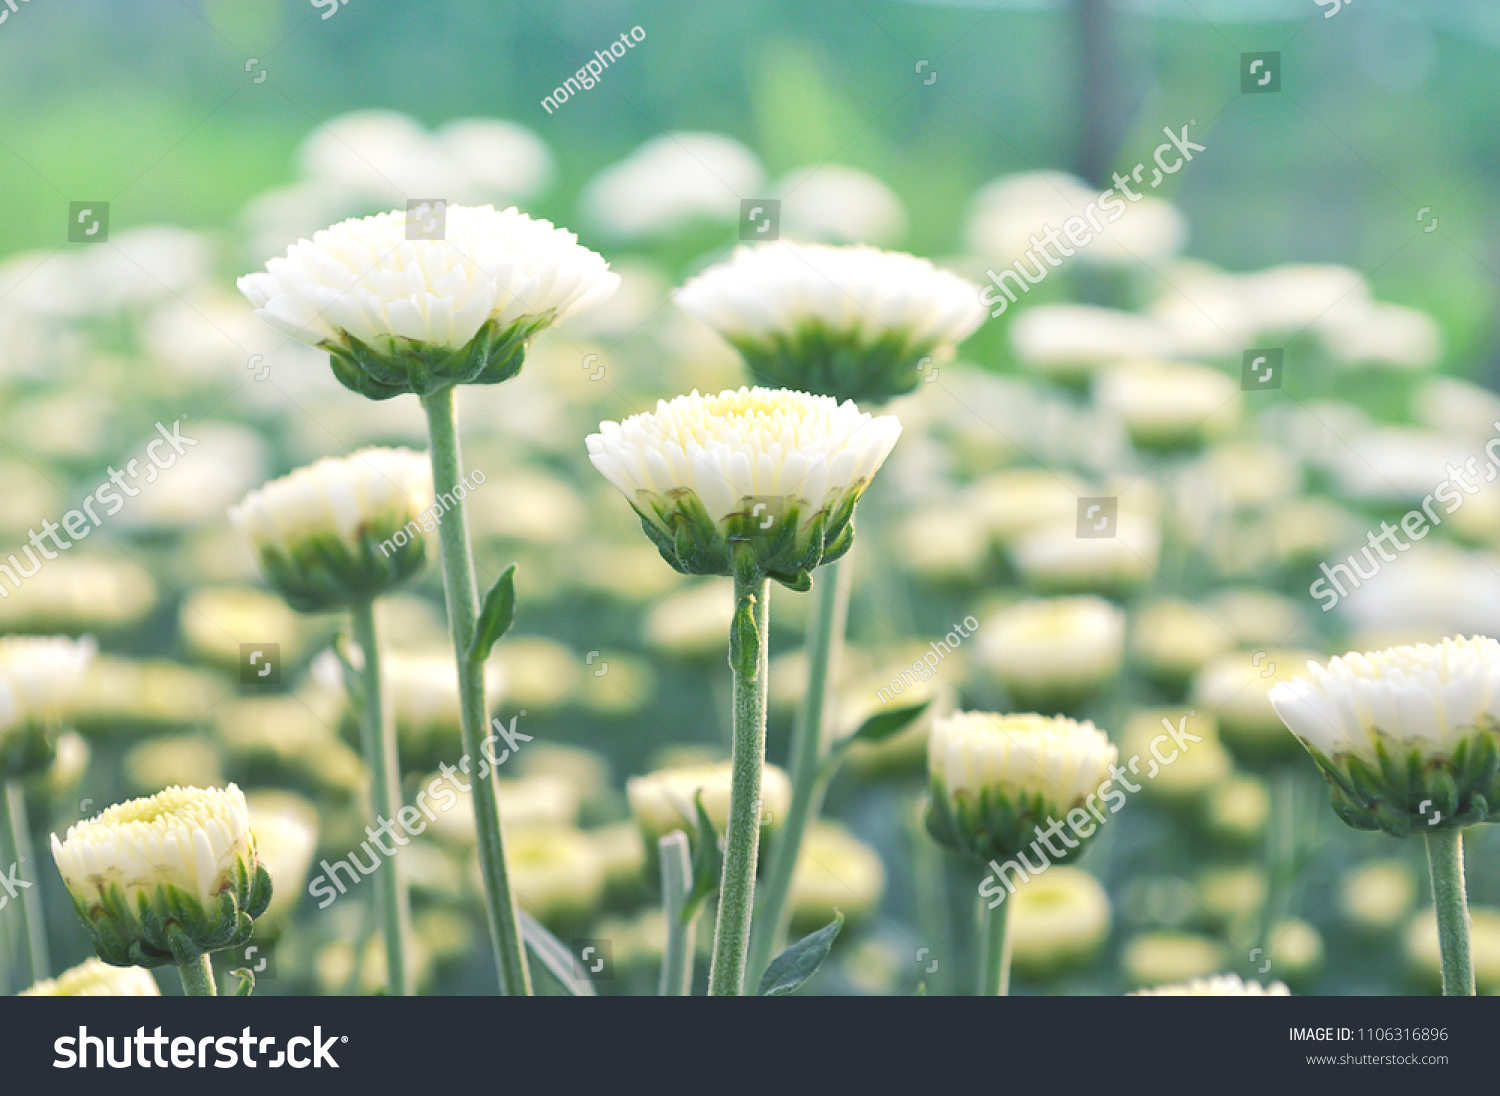 Good Morning Lovely White Flower Sunlight Stock Photo Royalty Free